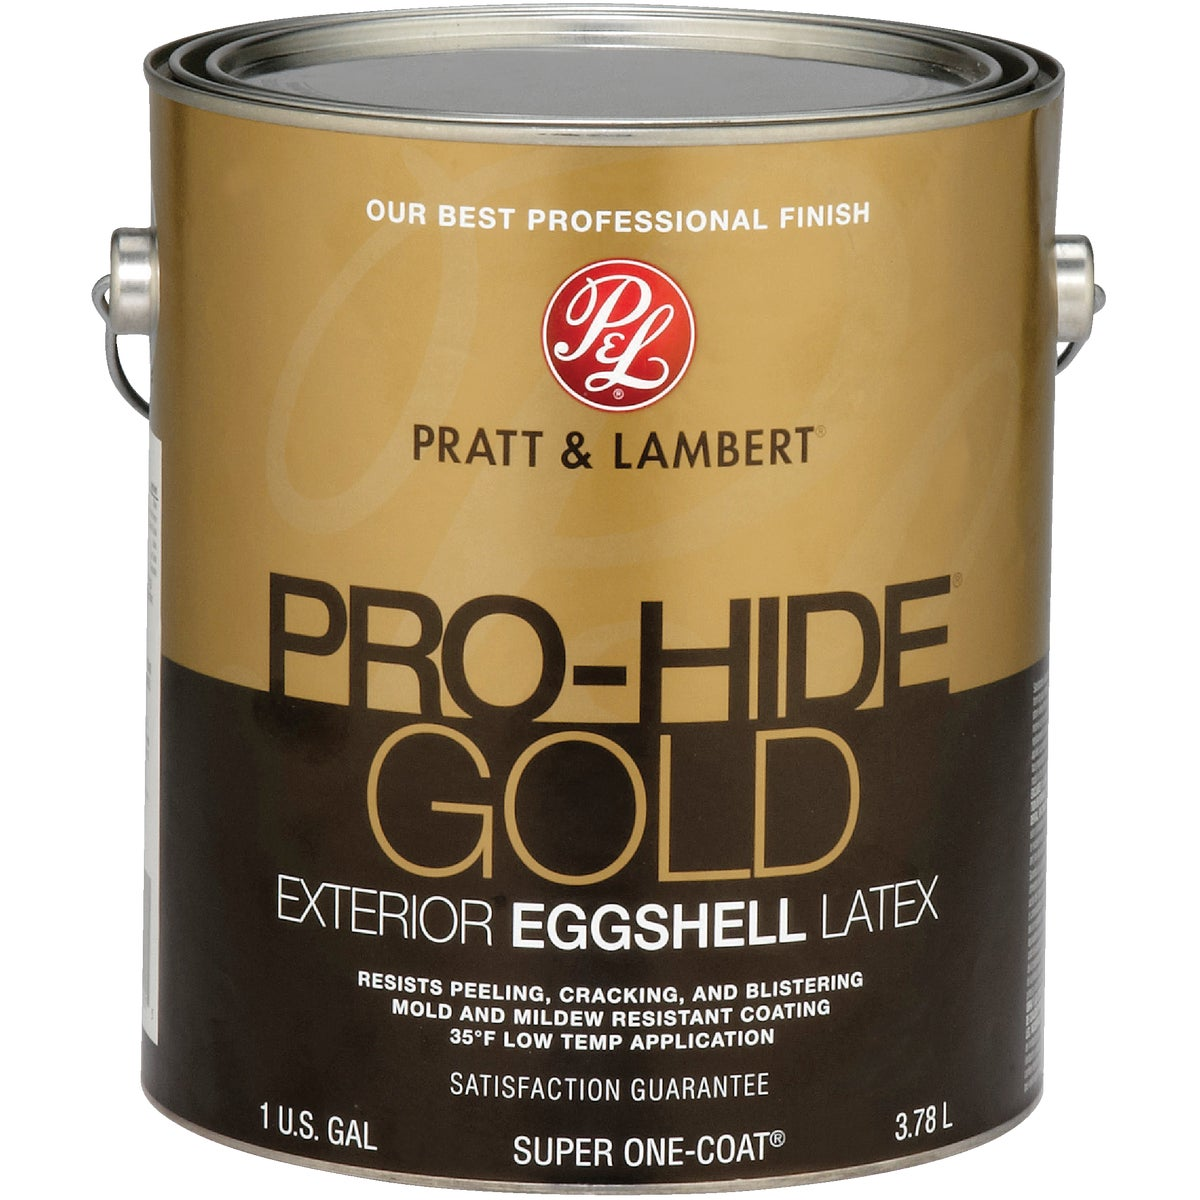 EXT EGG BASE 2 PAINT - 0000Z8592-16 by Do it Best